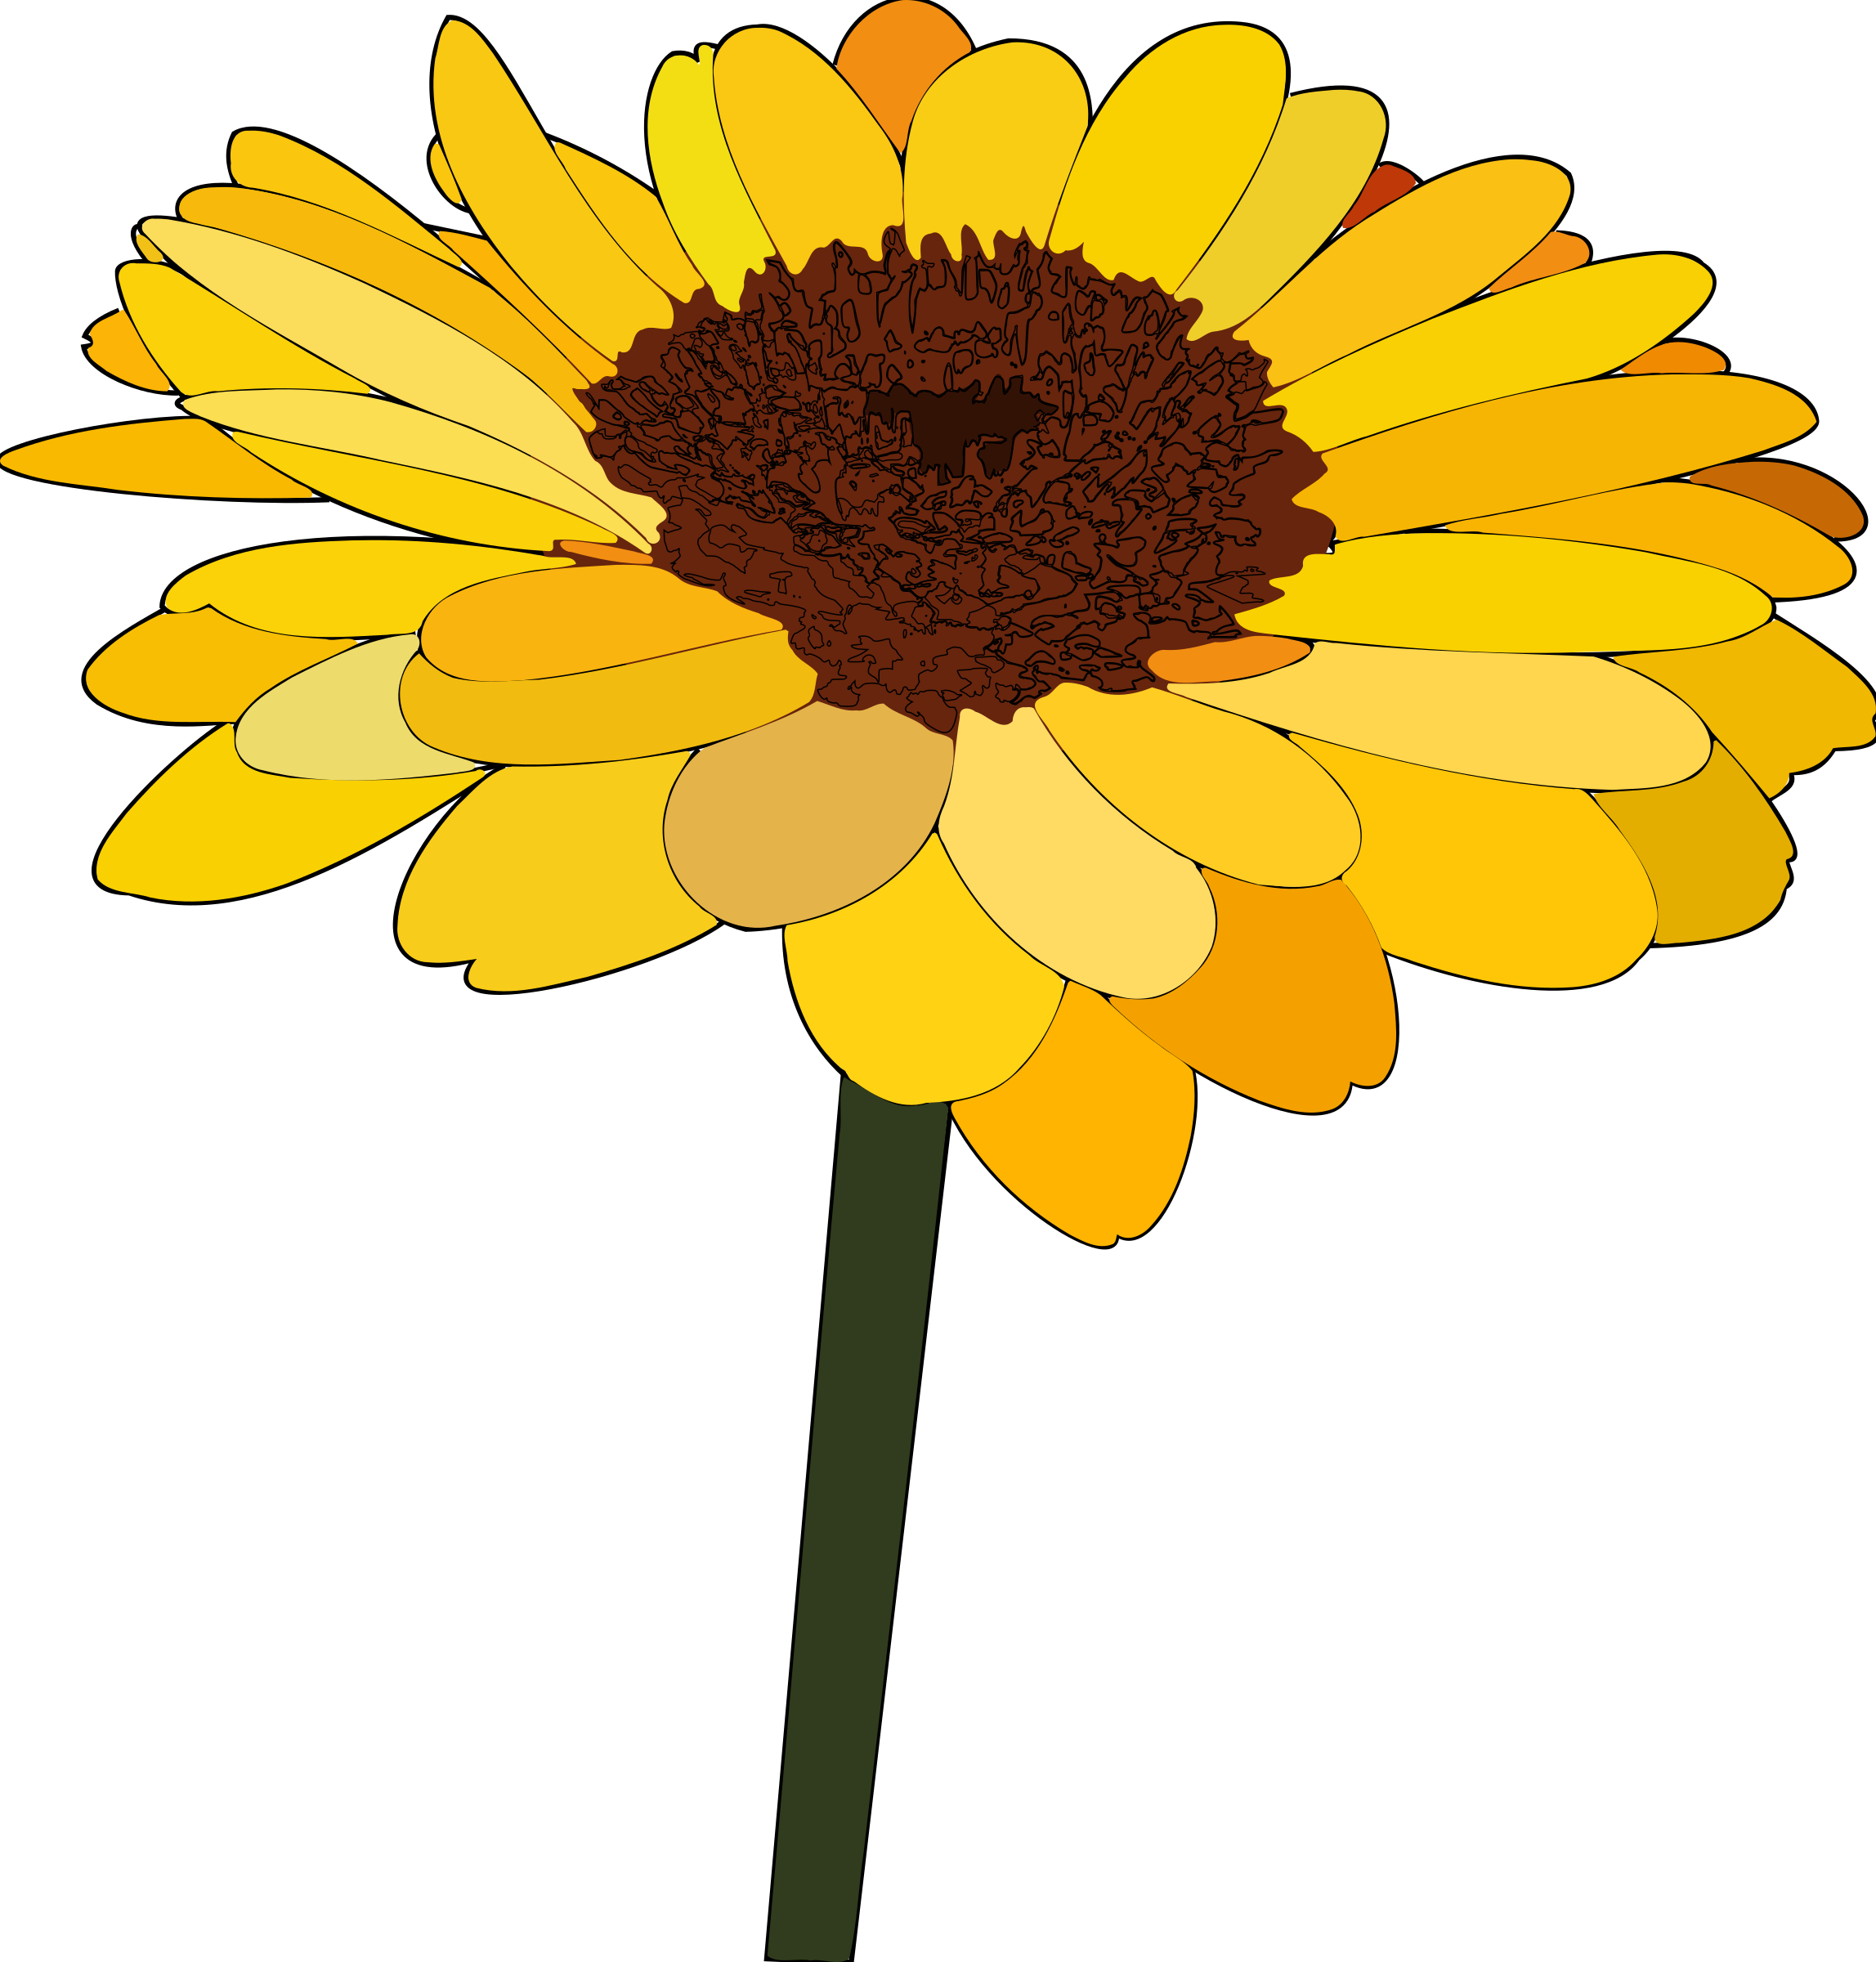 jpg freeuse  sunflower images photos. Sunflowers clipart thanksgiving